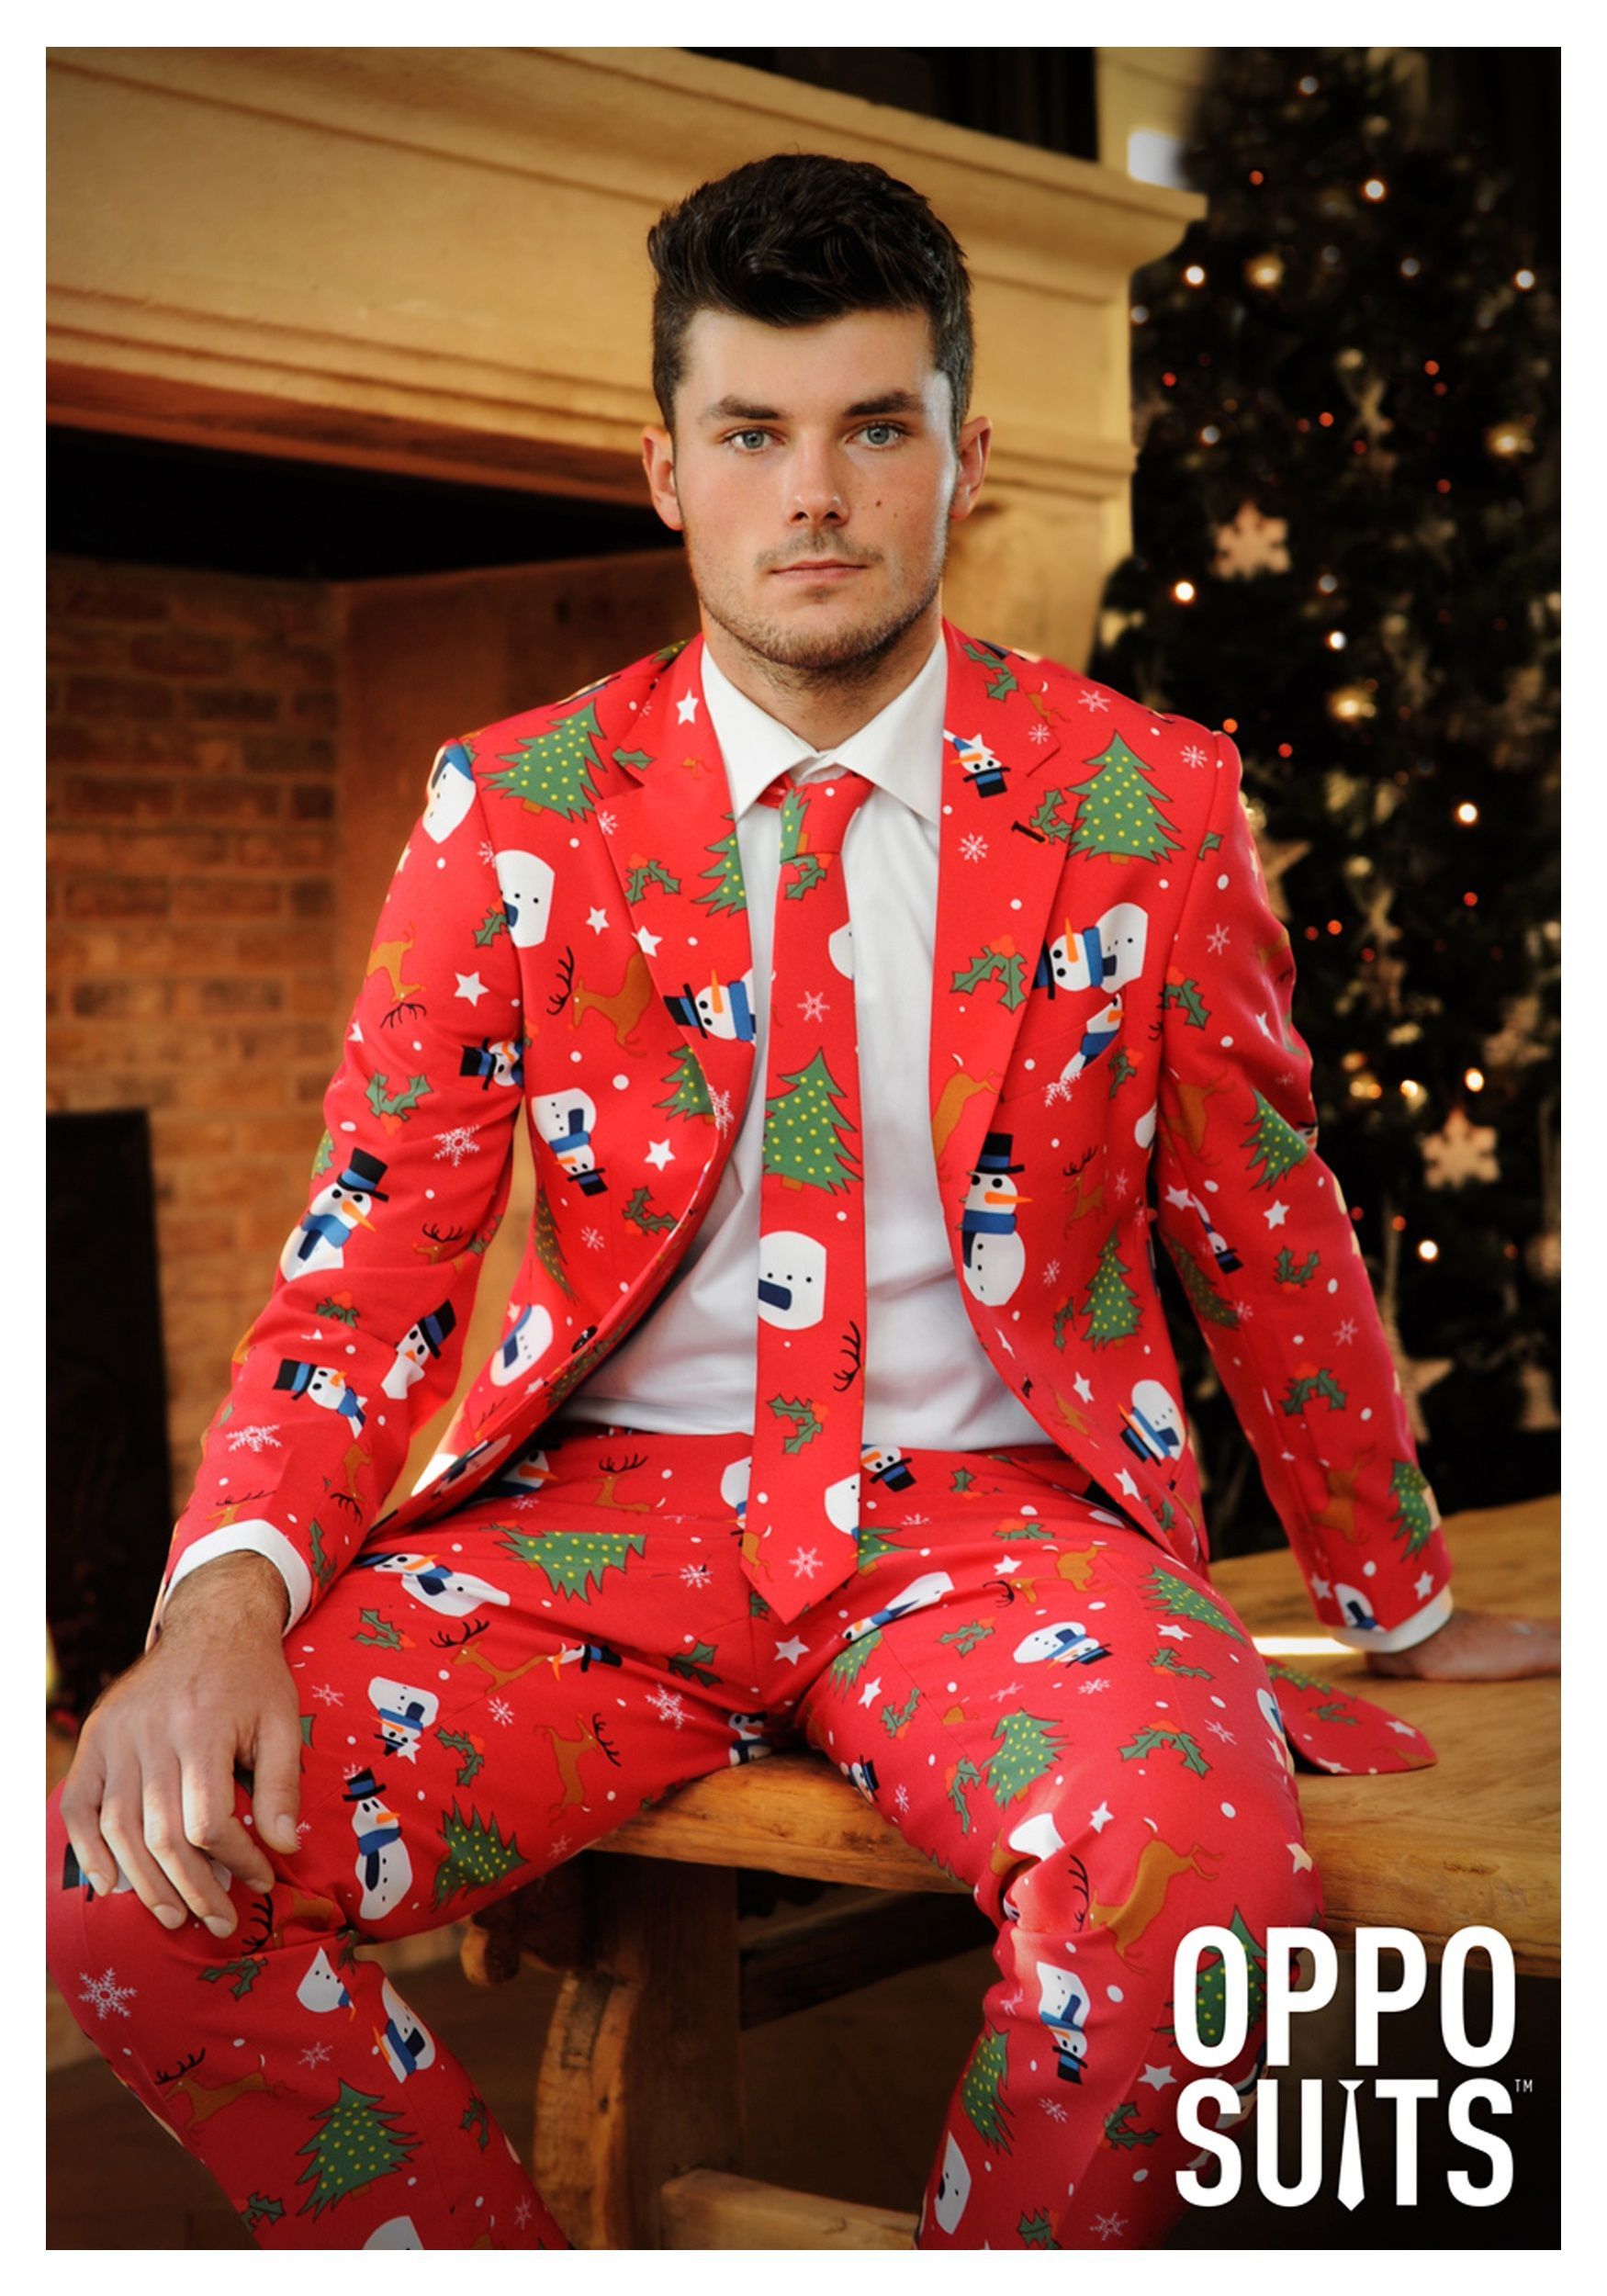 Santa Claus decided to upgrade his suit! This Men's Red Christmas ...